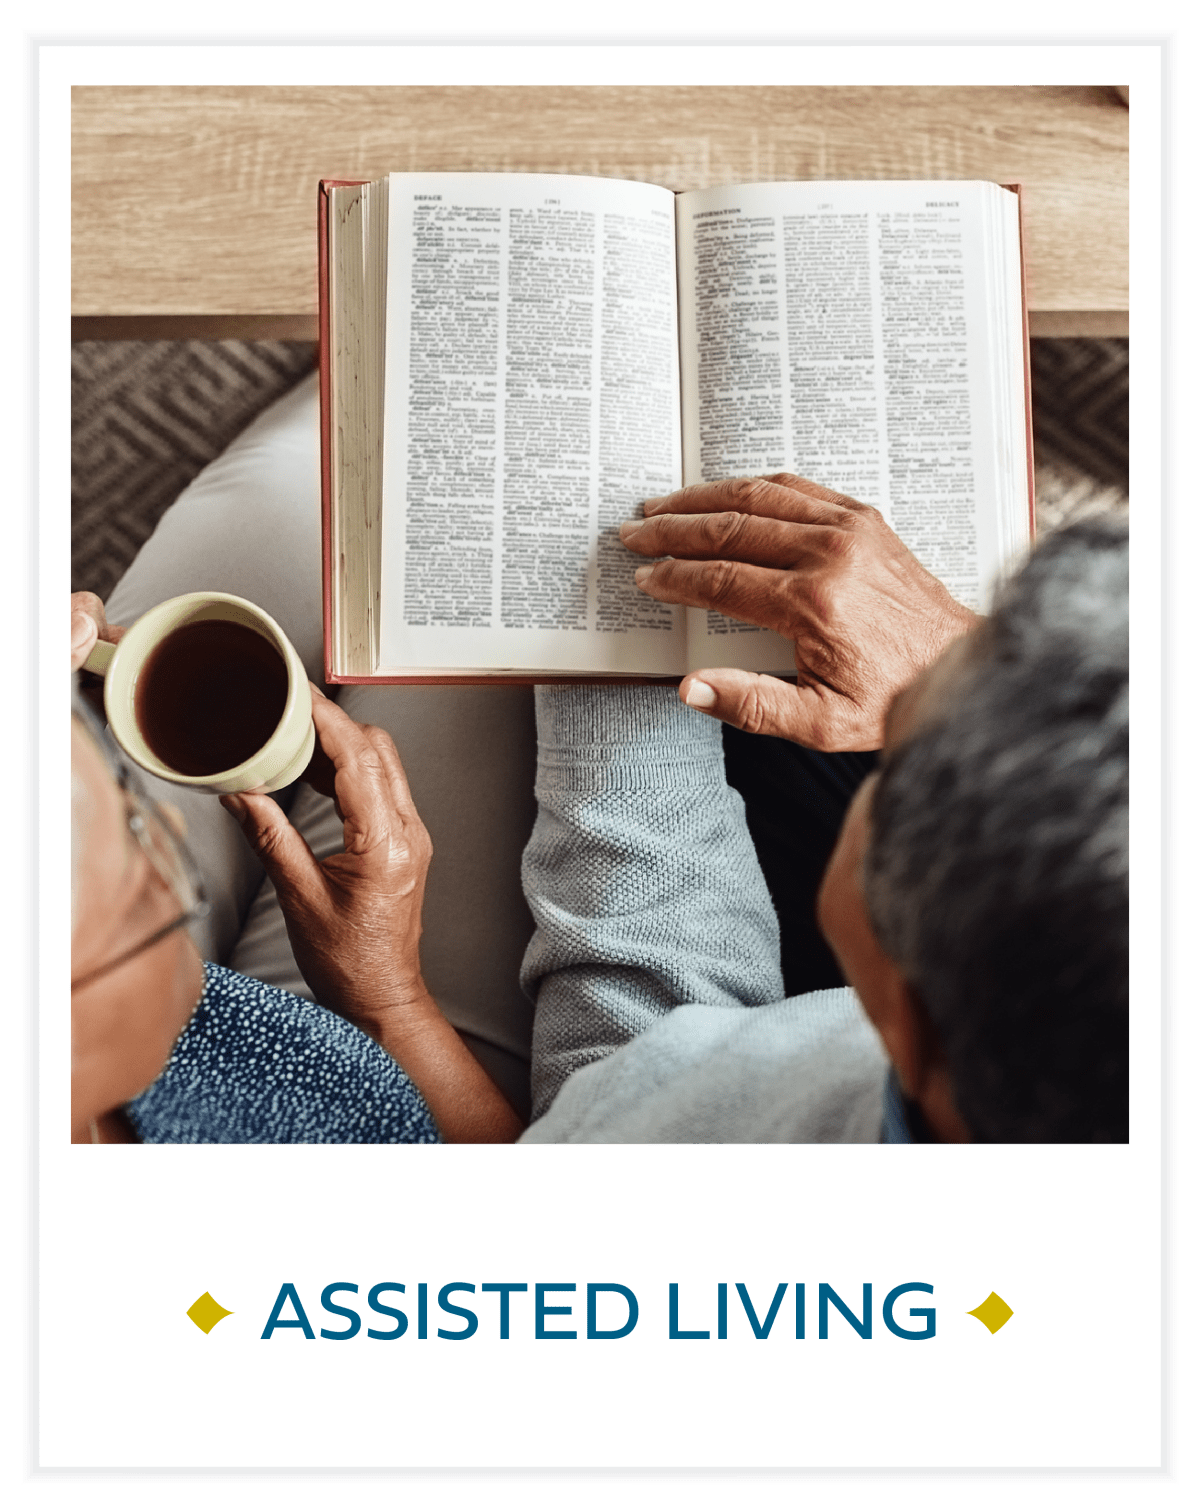 Assisted living at Broadwell Senior Living in Plymouth, Minnesota